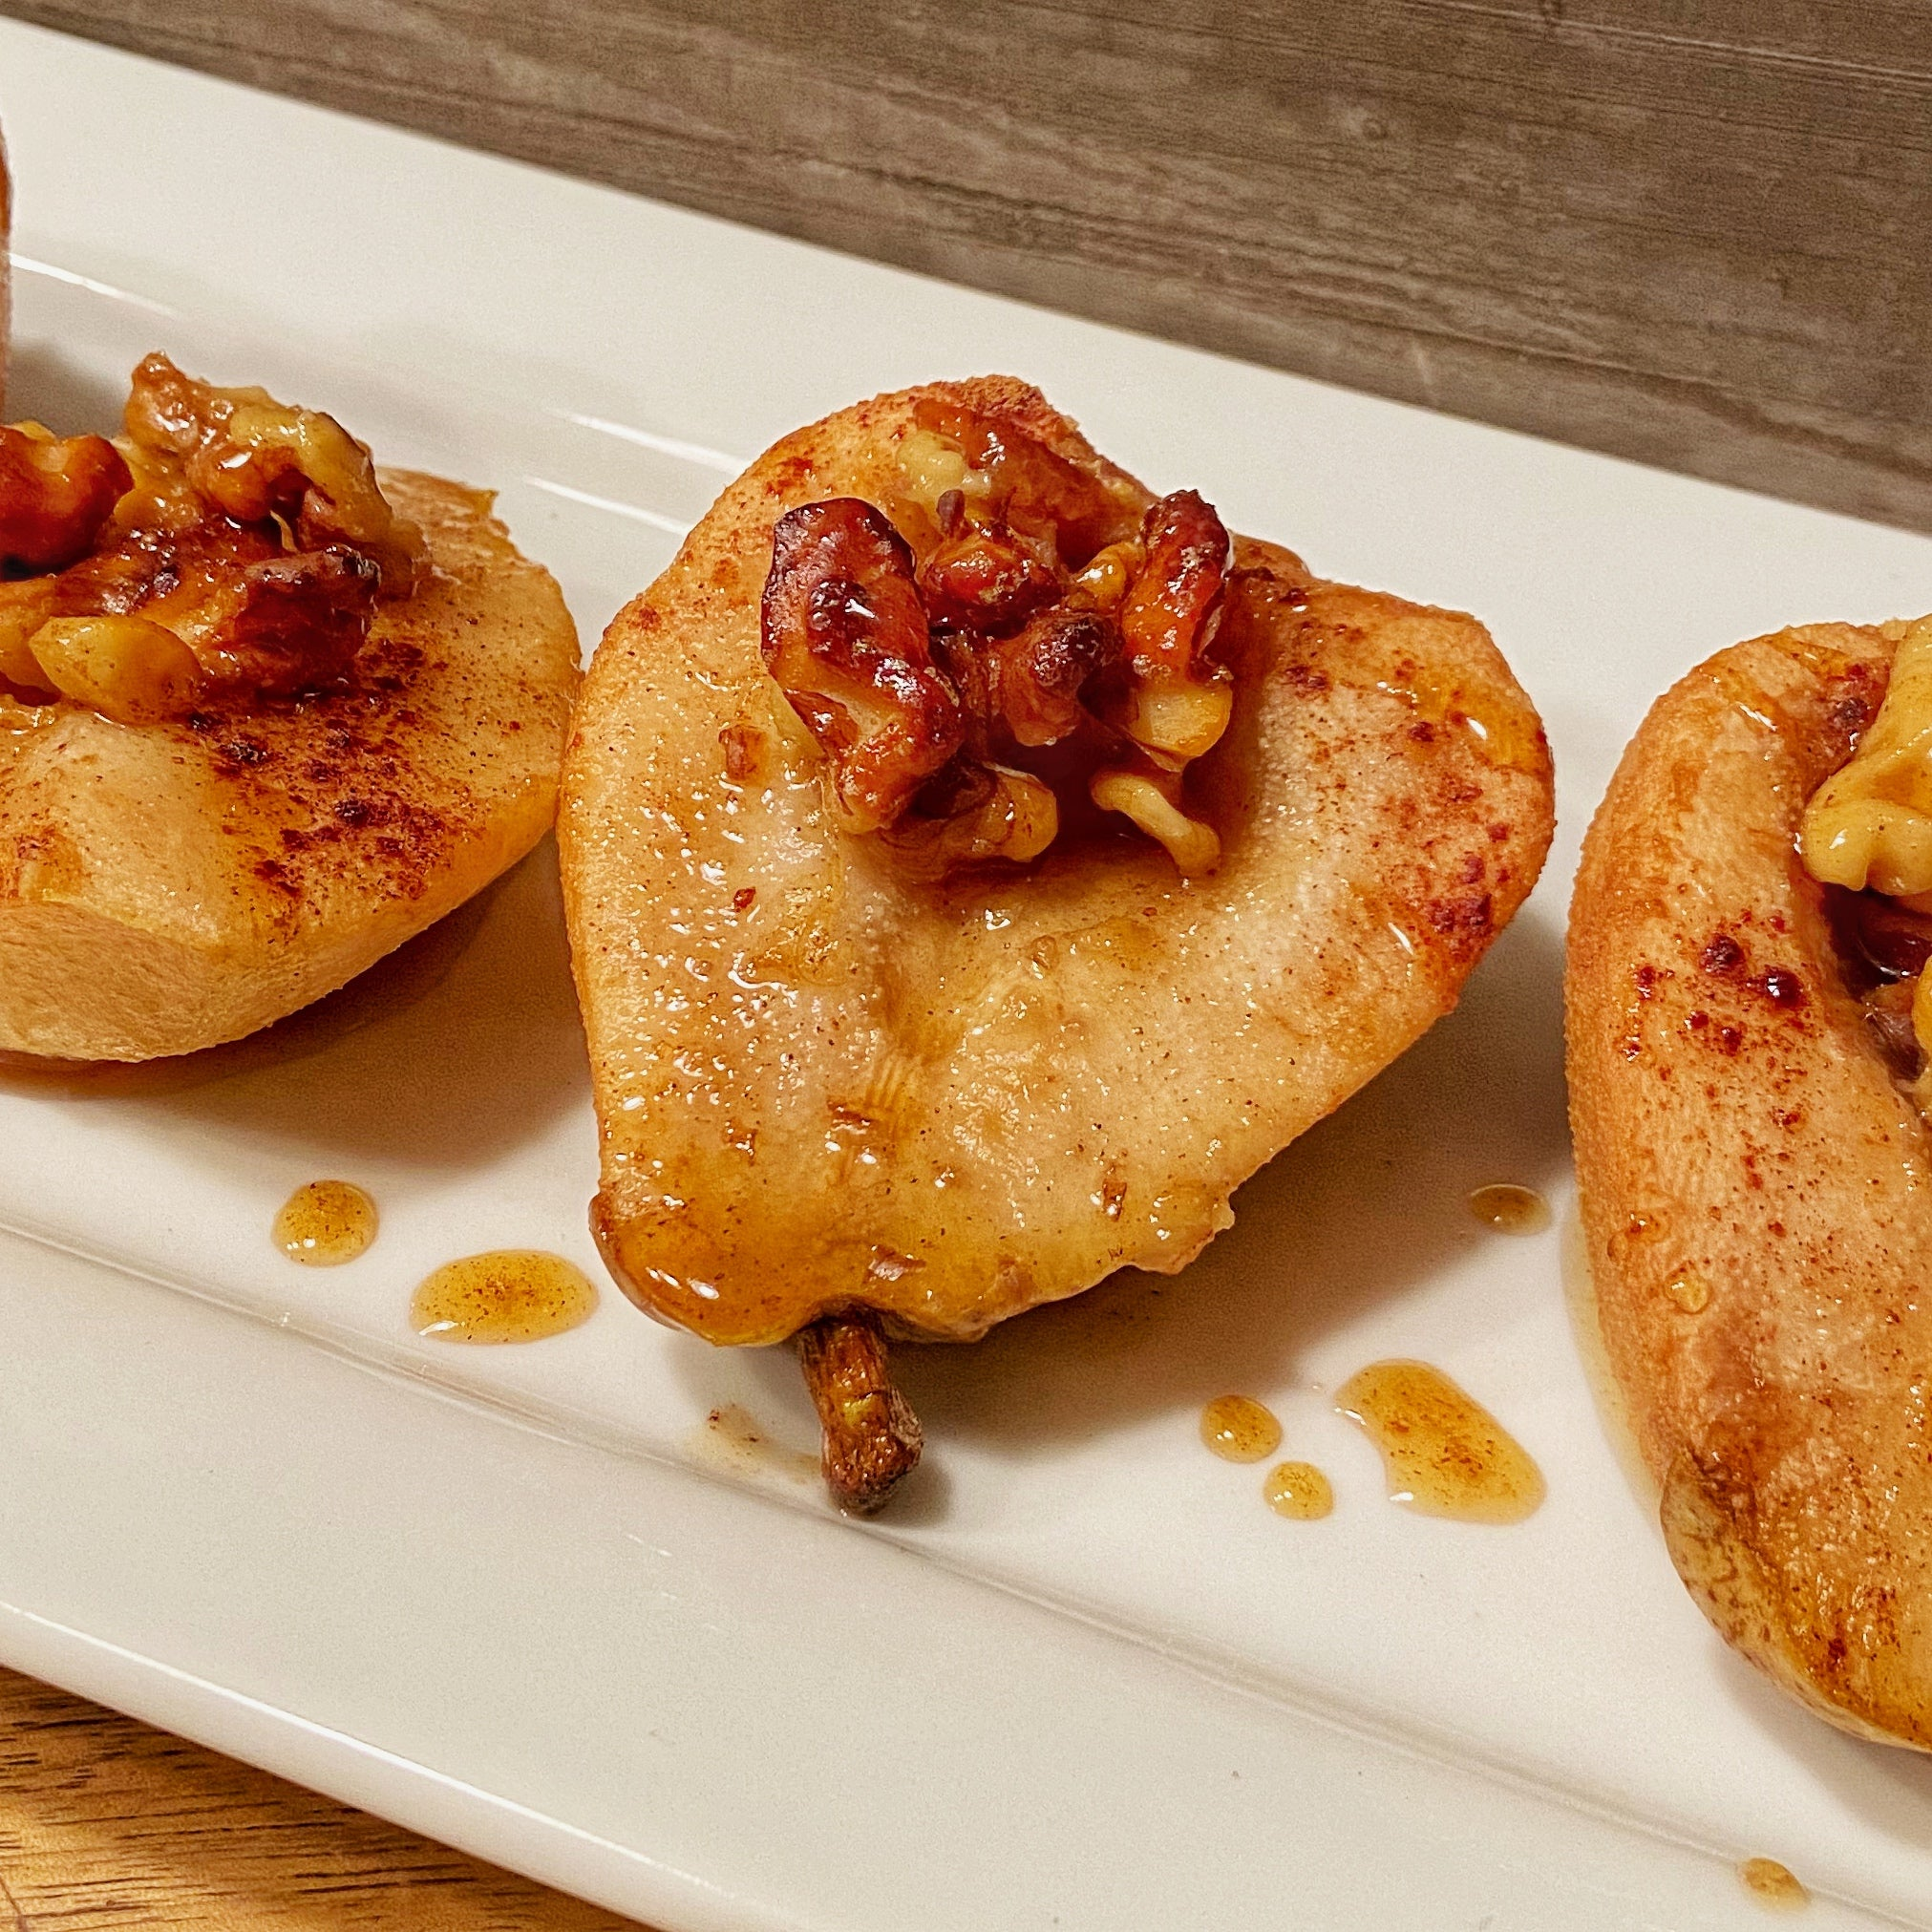 Stuffed Baked Pears with Walnuts & Honey